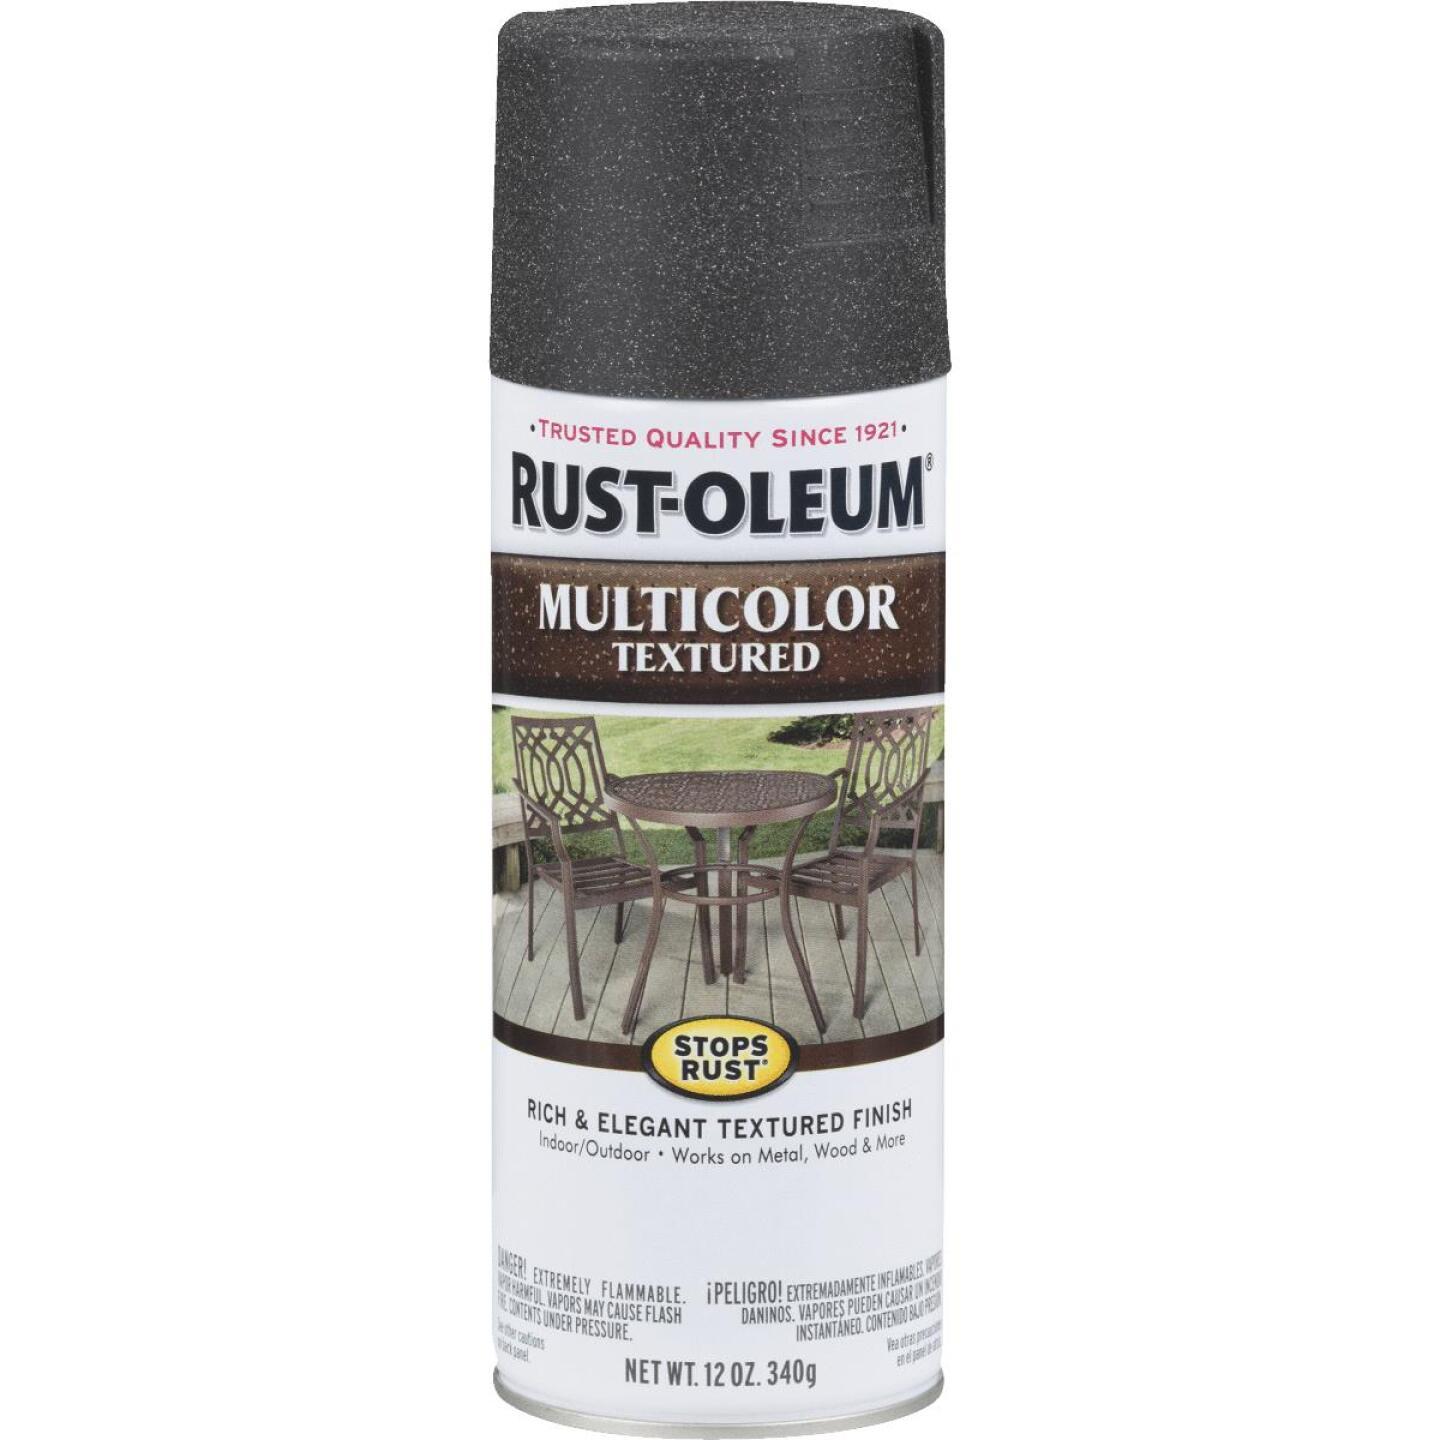 Rust-Oleum Stops Rust MultiColor 12 Oz. Textured Spray Paint, Aged Iron Image 1